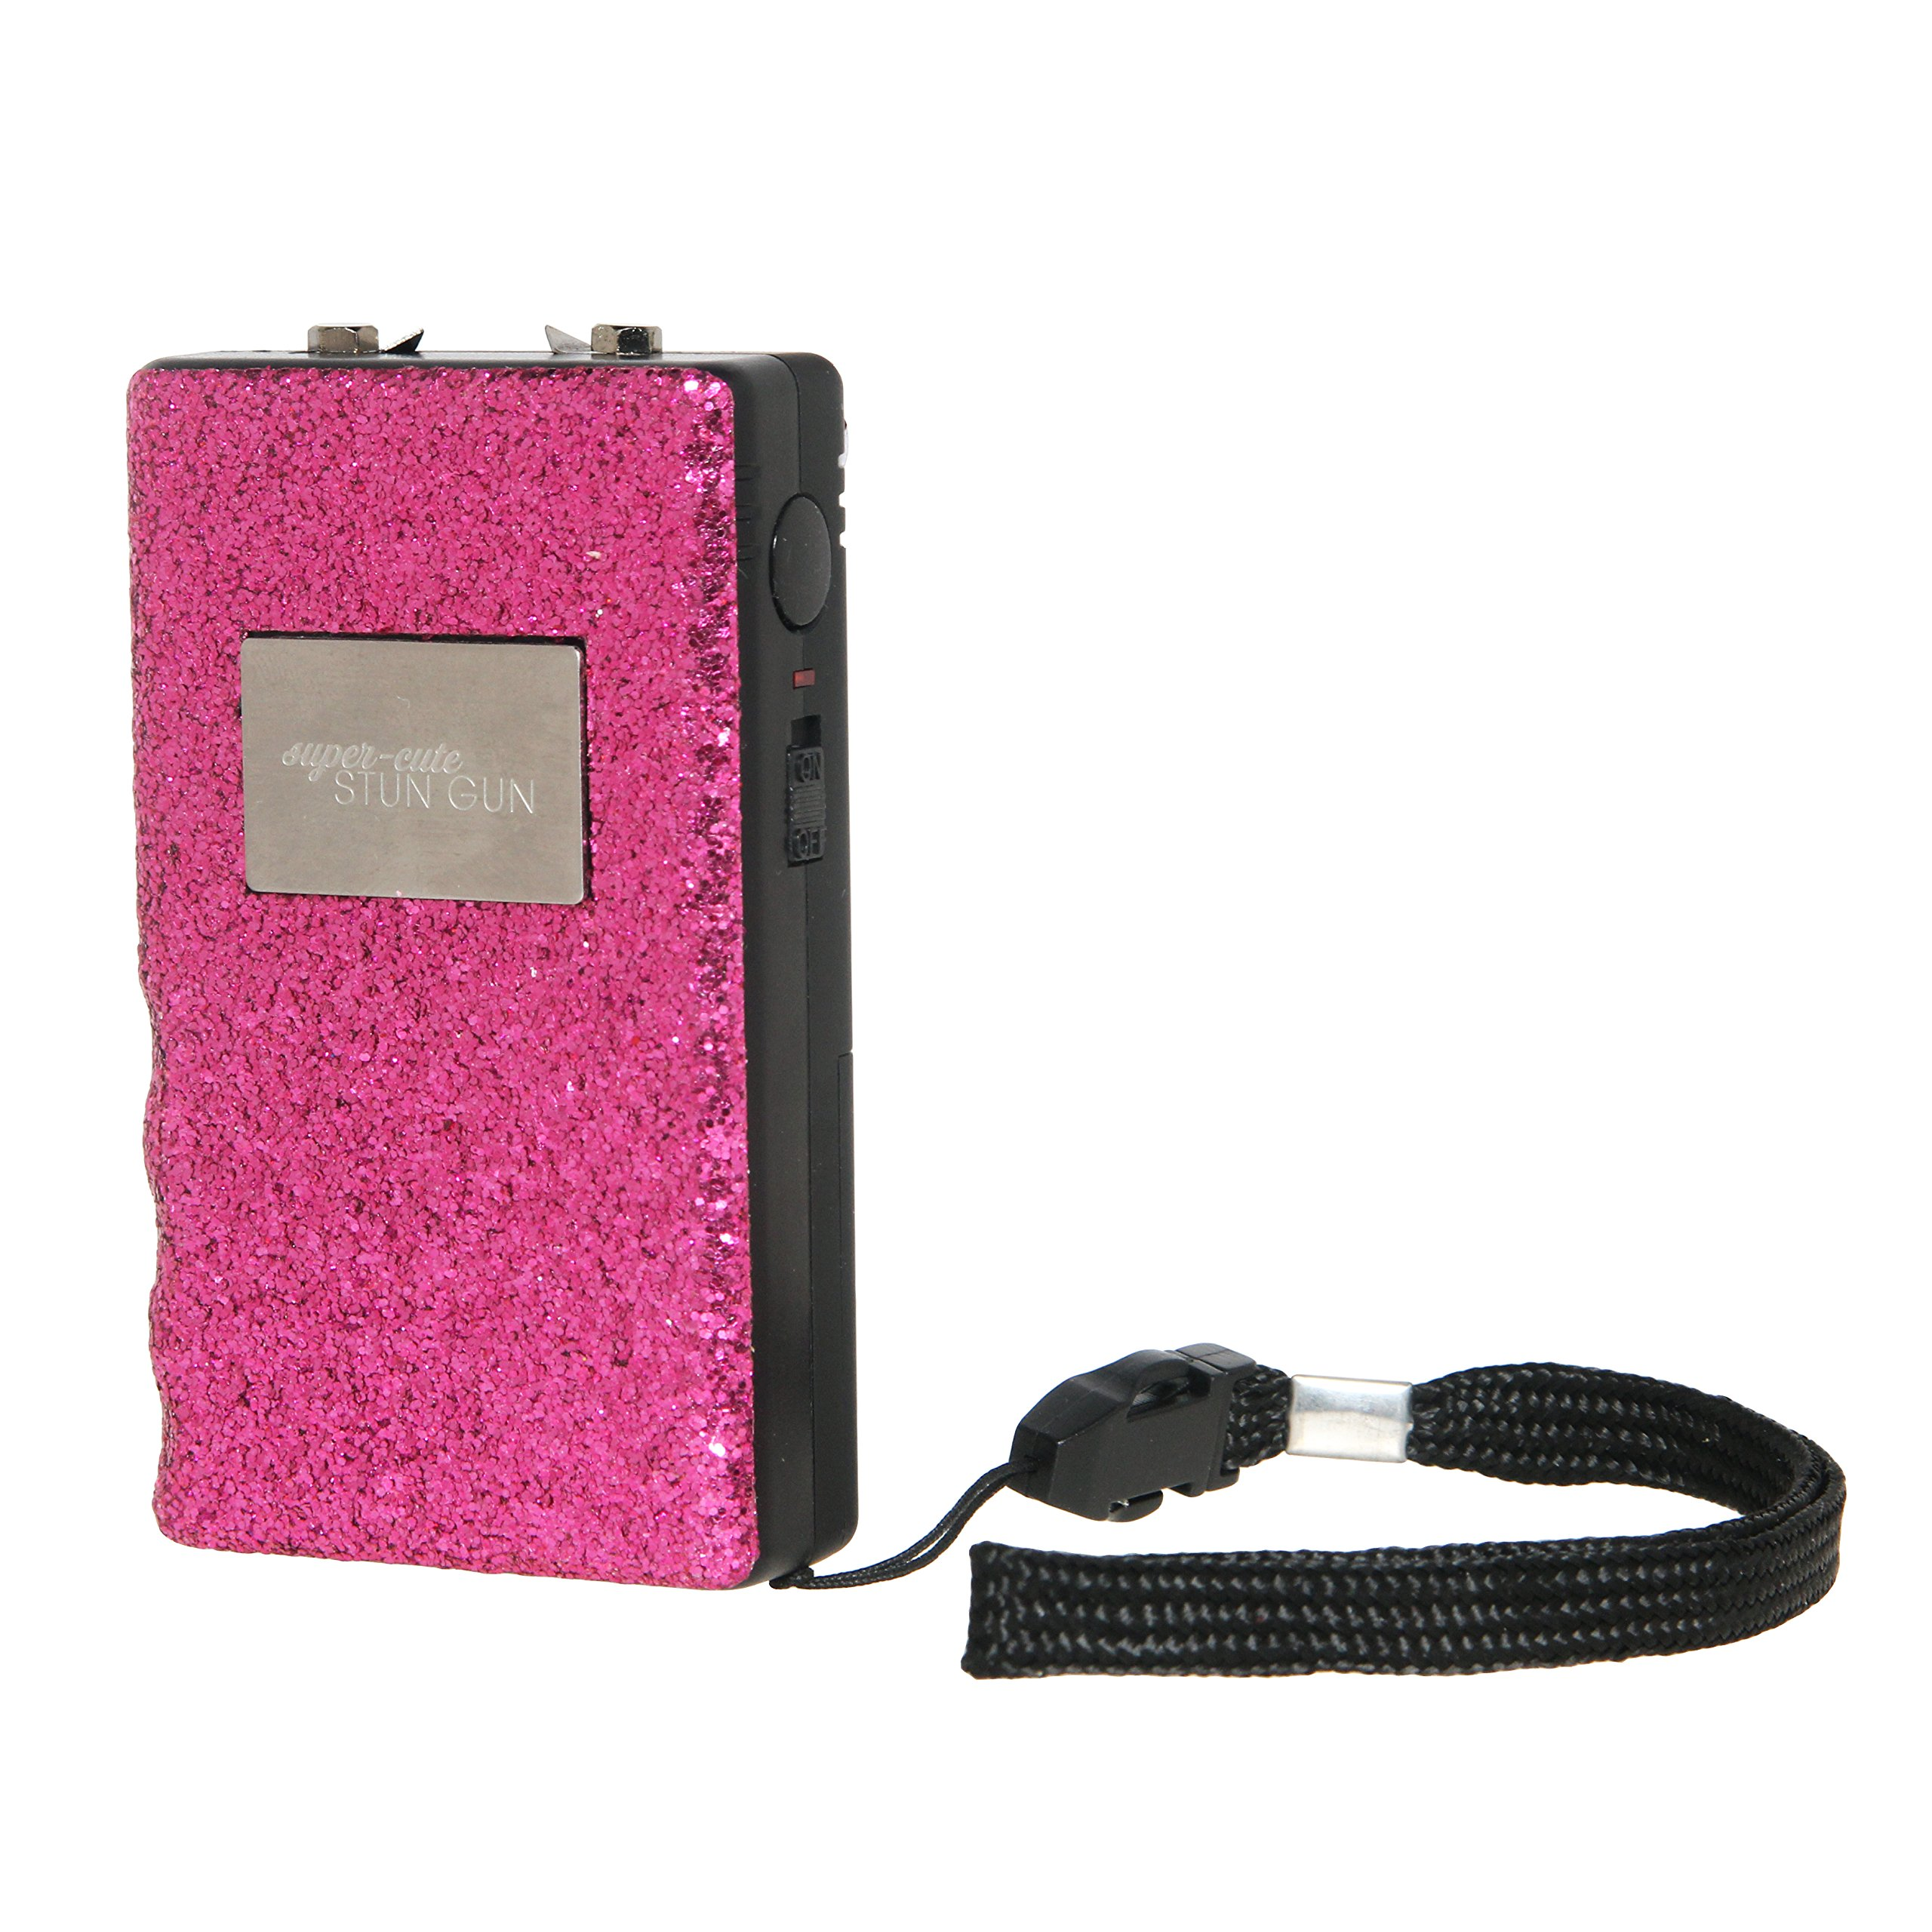 Cute Stun Gun Compact for Women - Self Defense Stun Gun Compact Size Weapon for Pocket, Purse, or Car, Pink Glitter